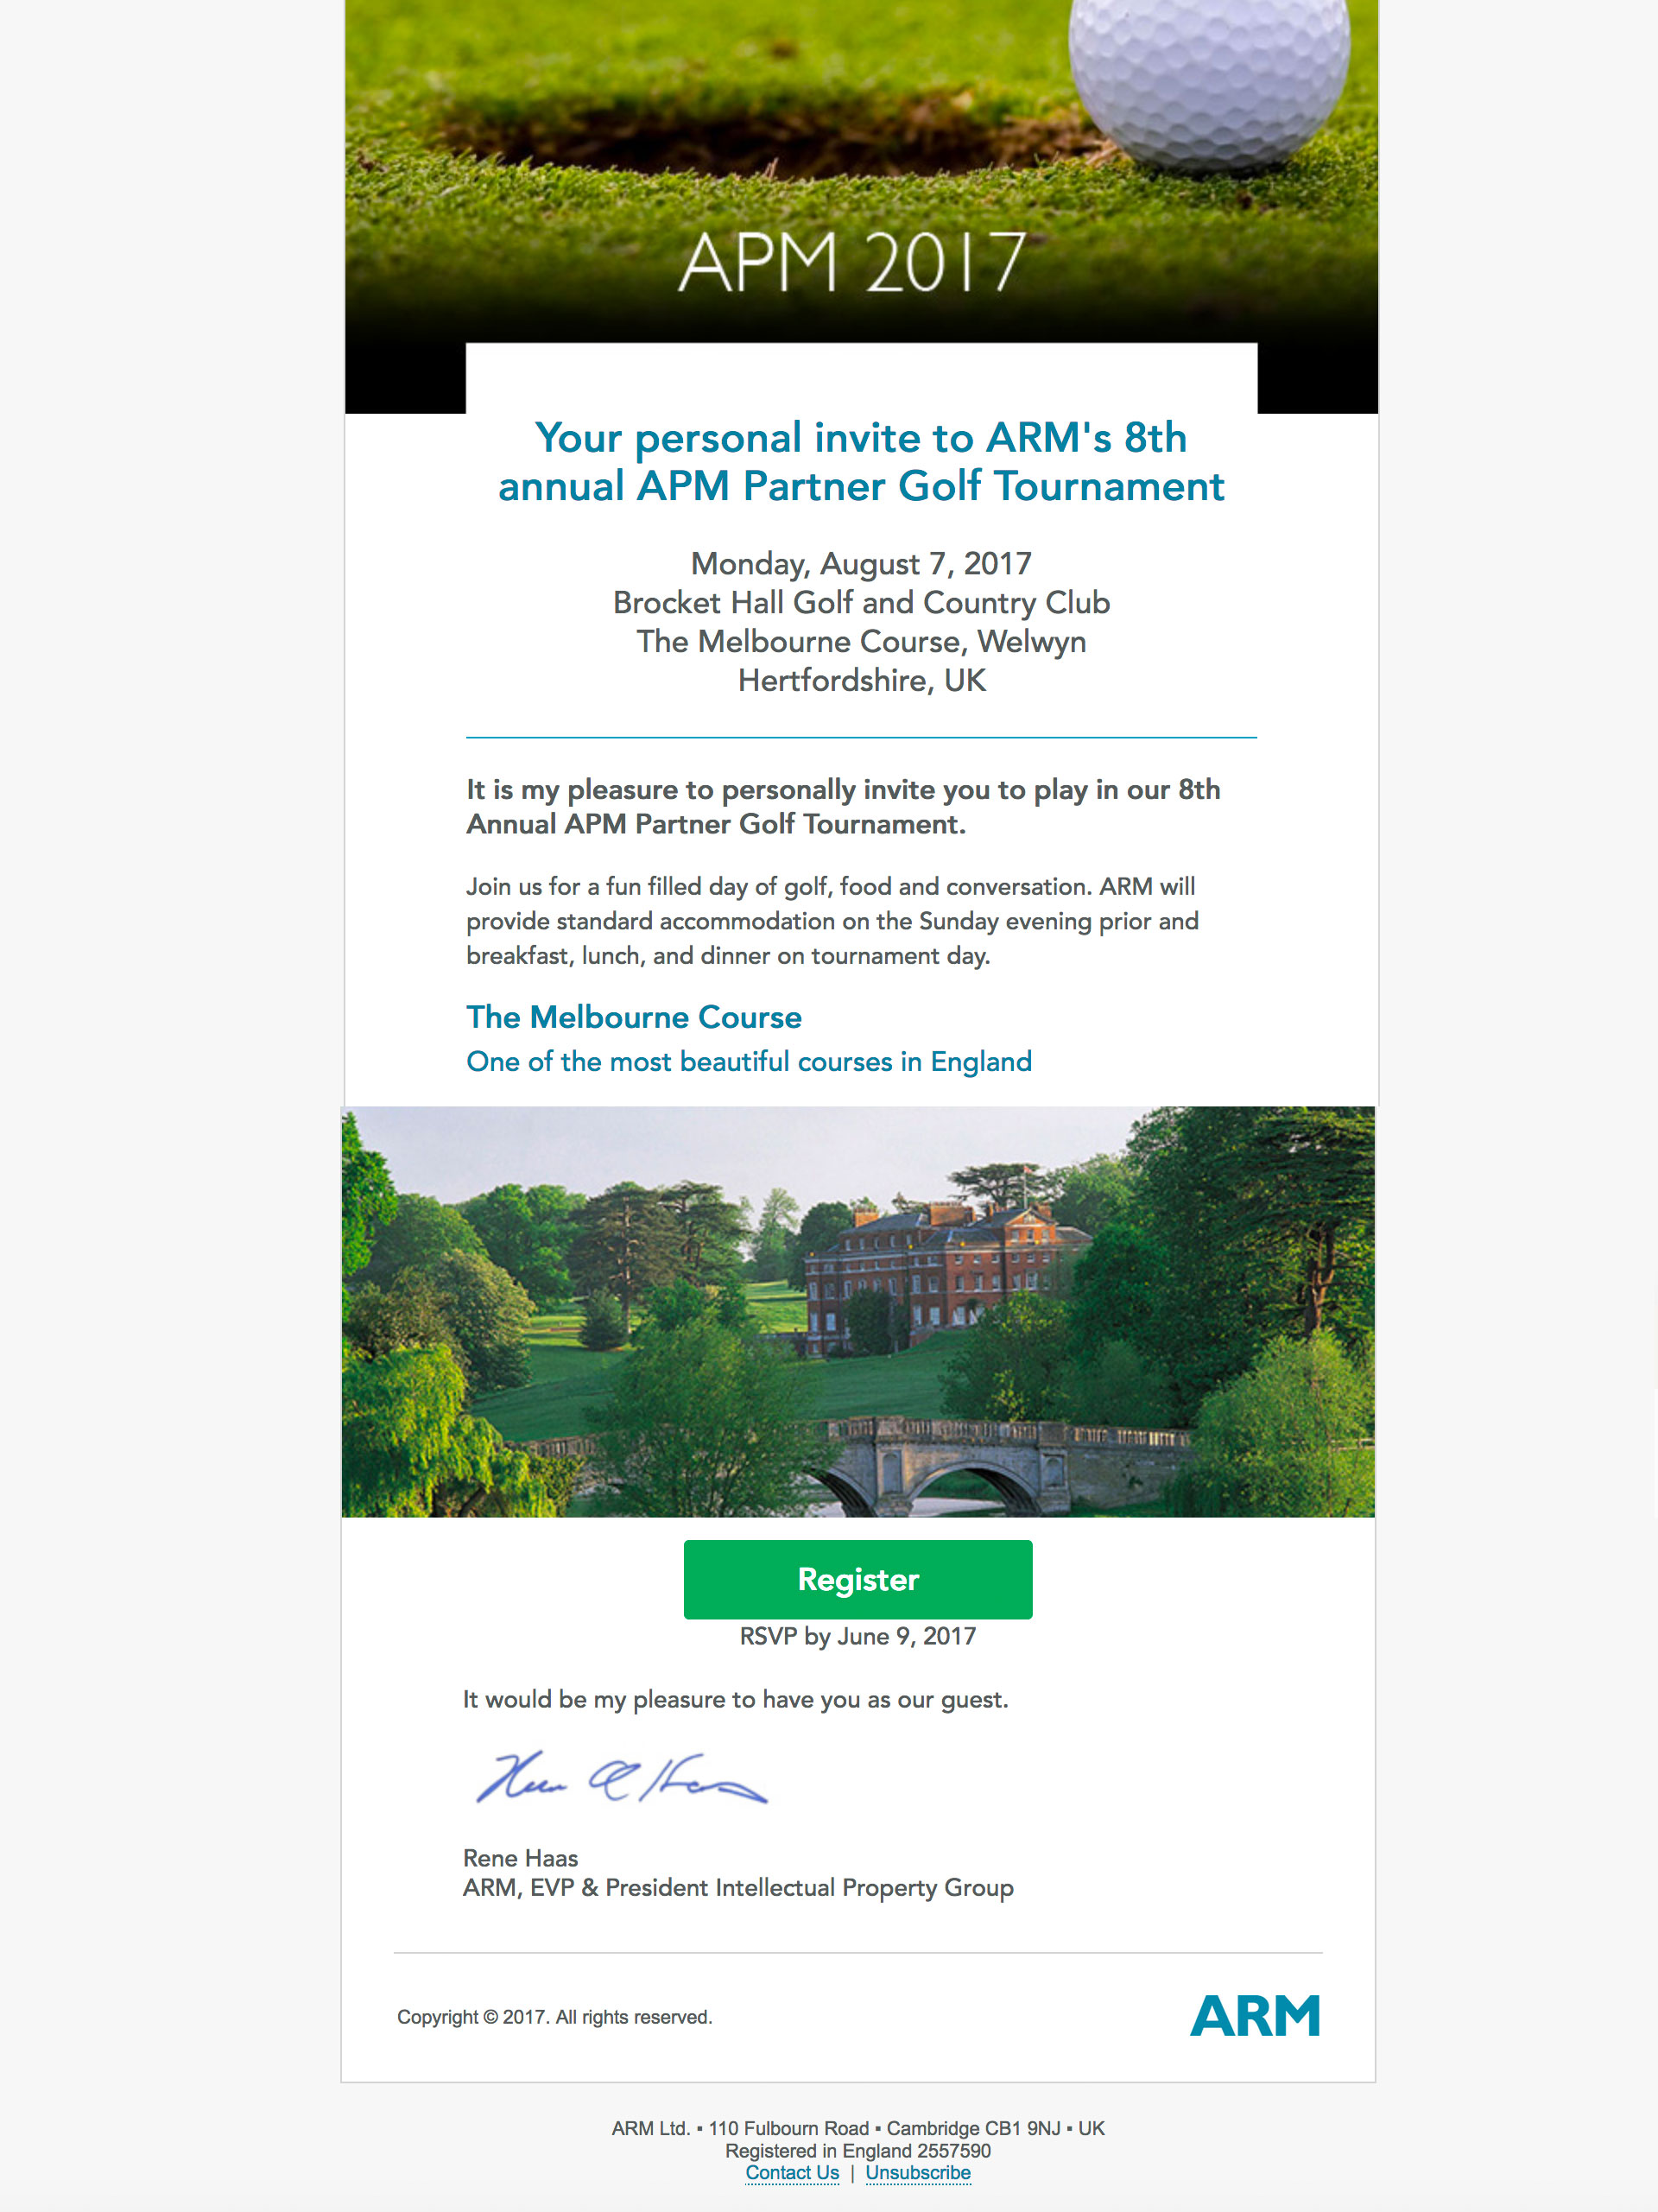 apm golf invite email